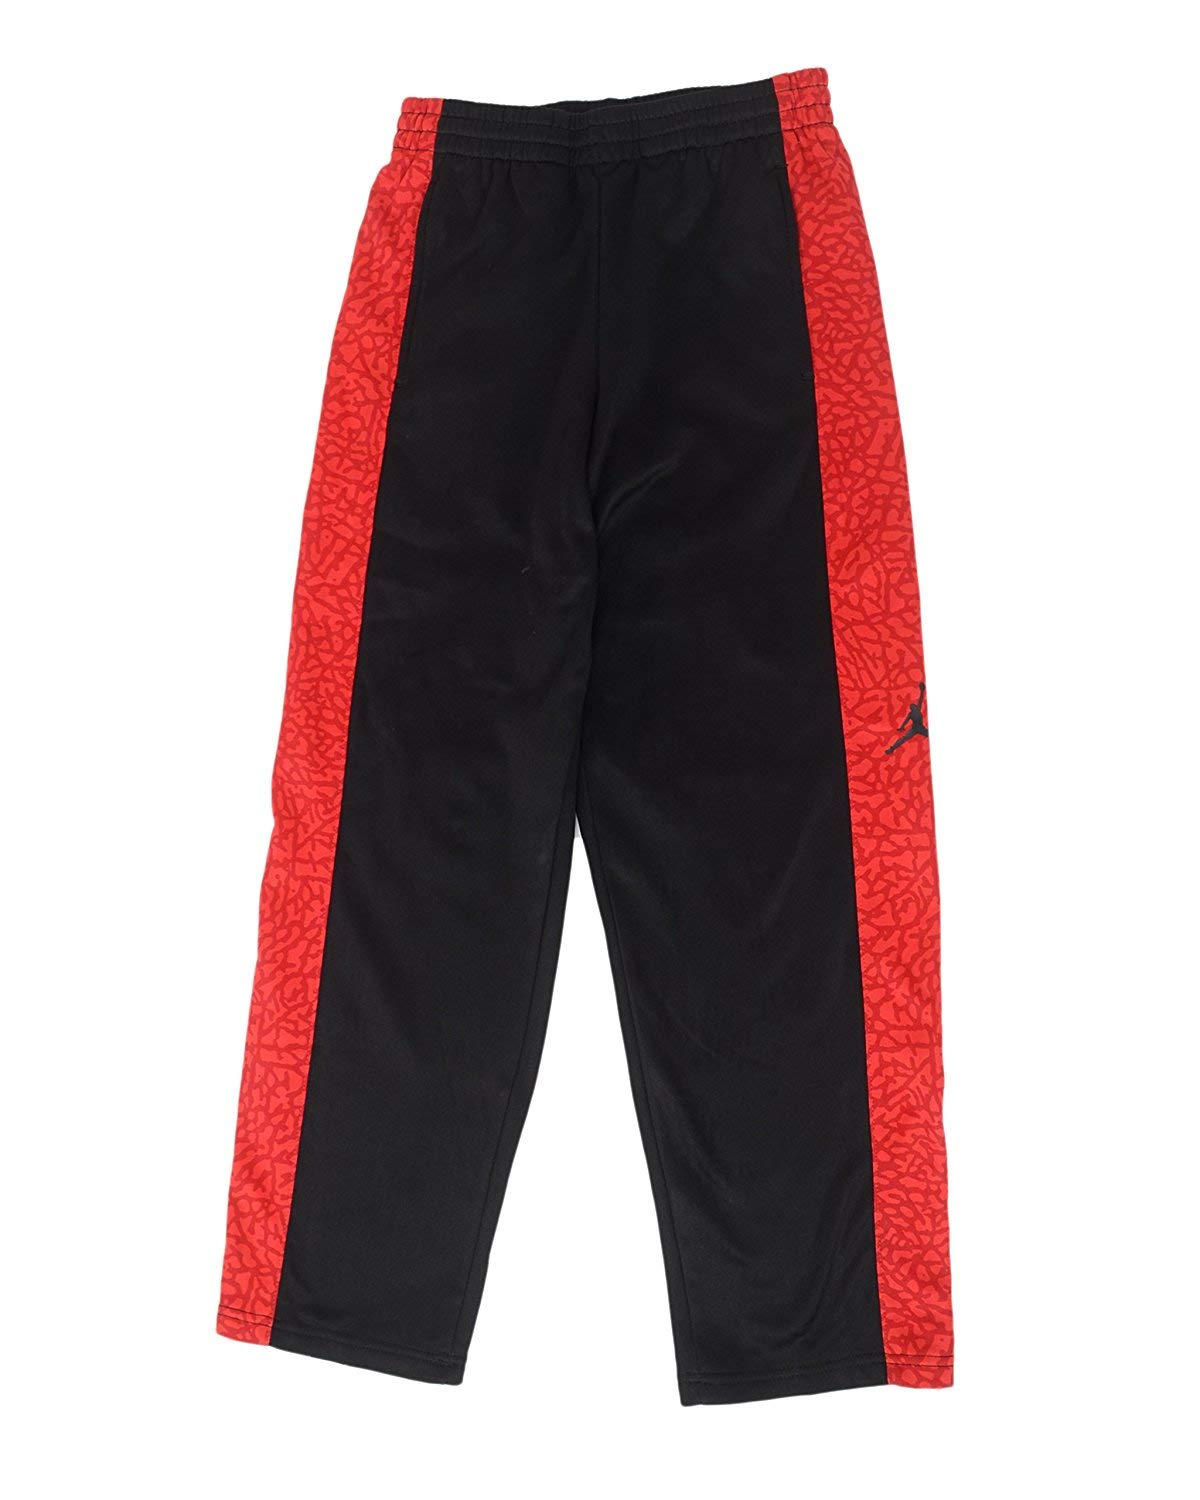 257f49c9714 Amazon.com: NIKE Boys Youth Air Jordan Track Pants: Clothing